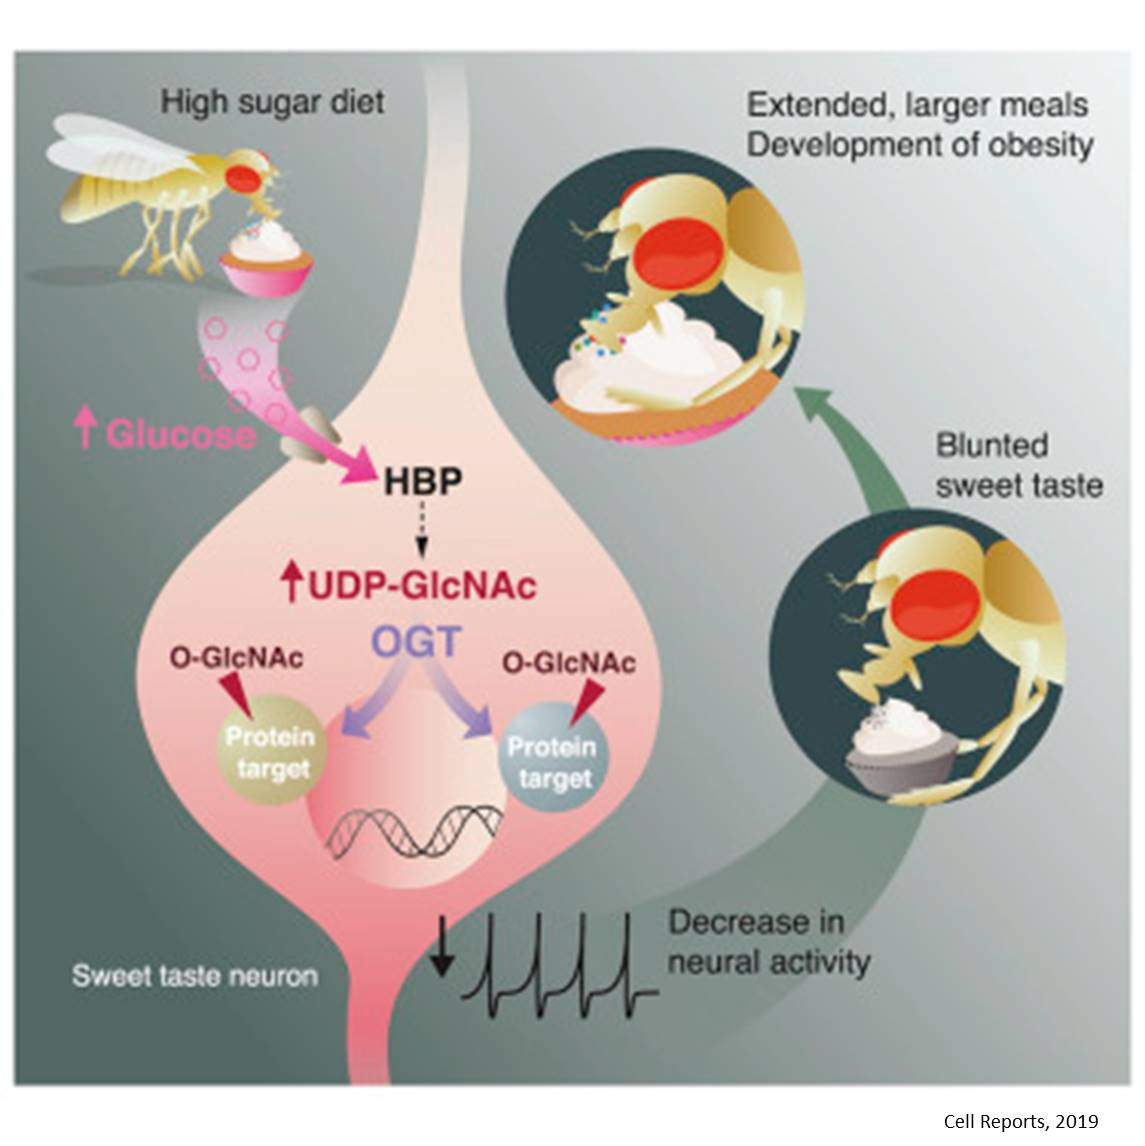 High-sugar diet reshapes sweet tooth; promotes overeating, obesity in flies